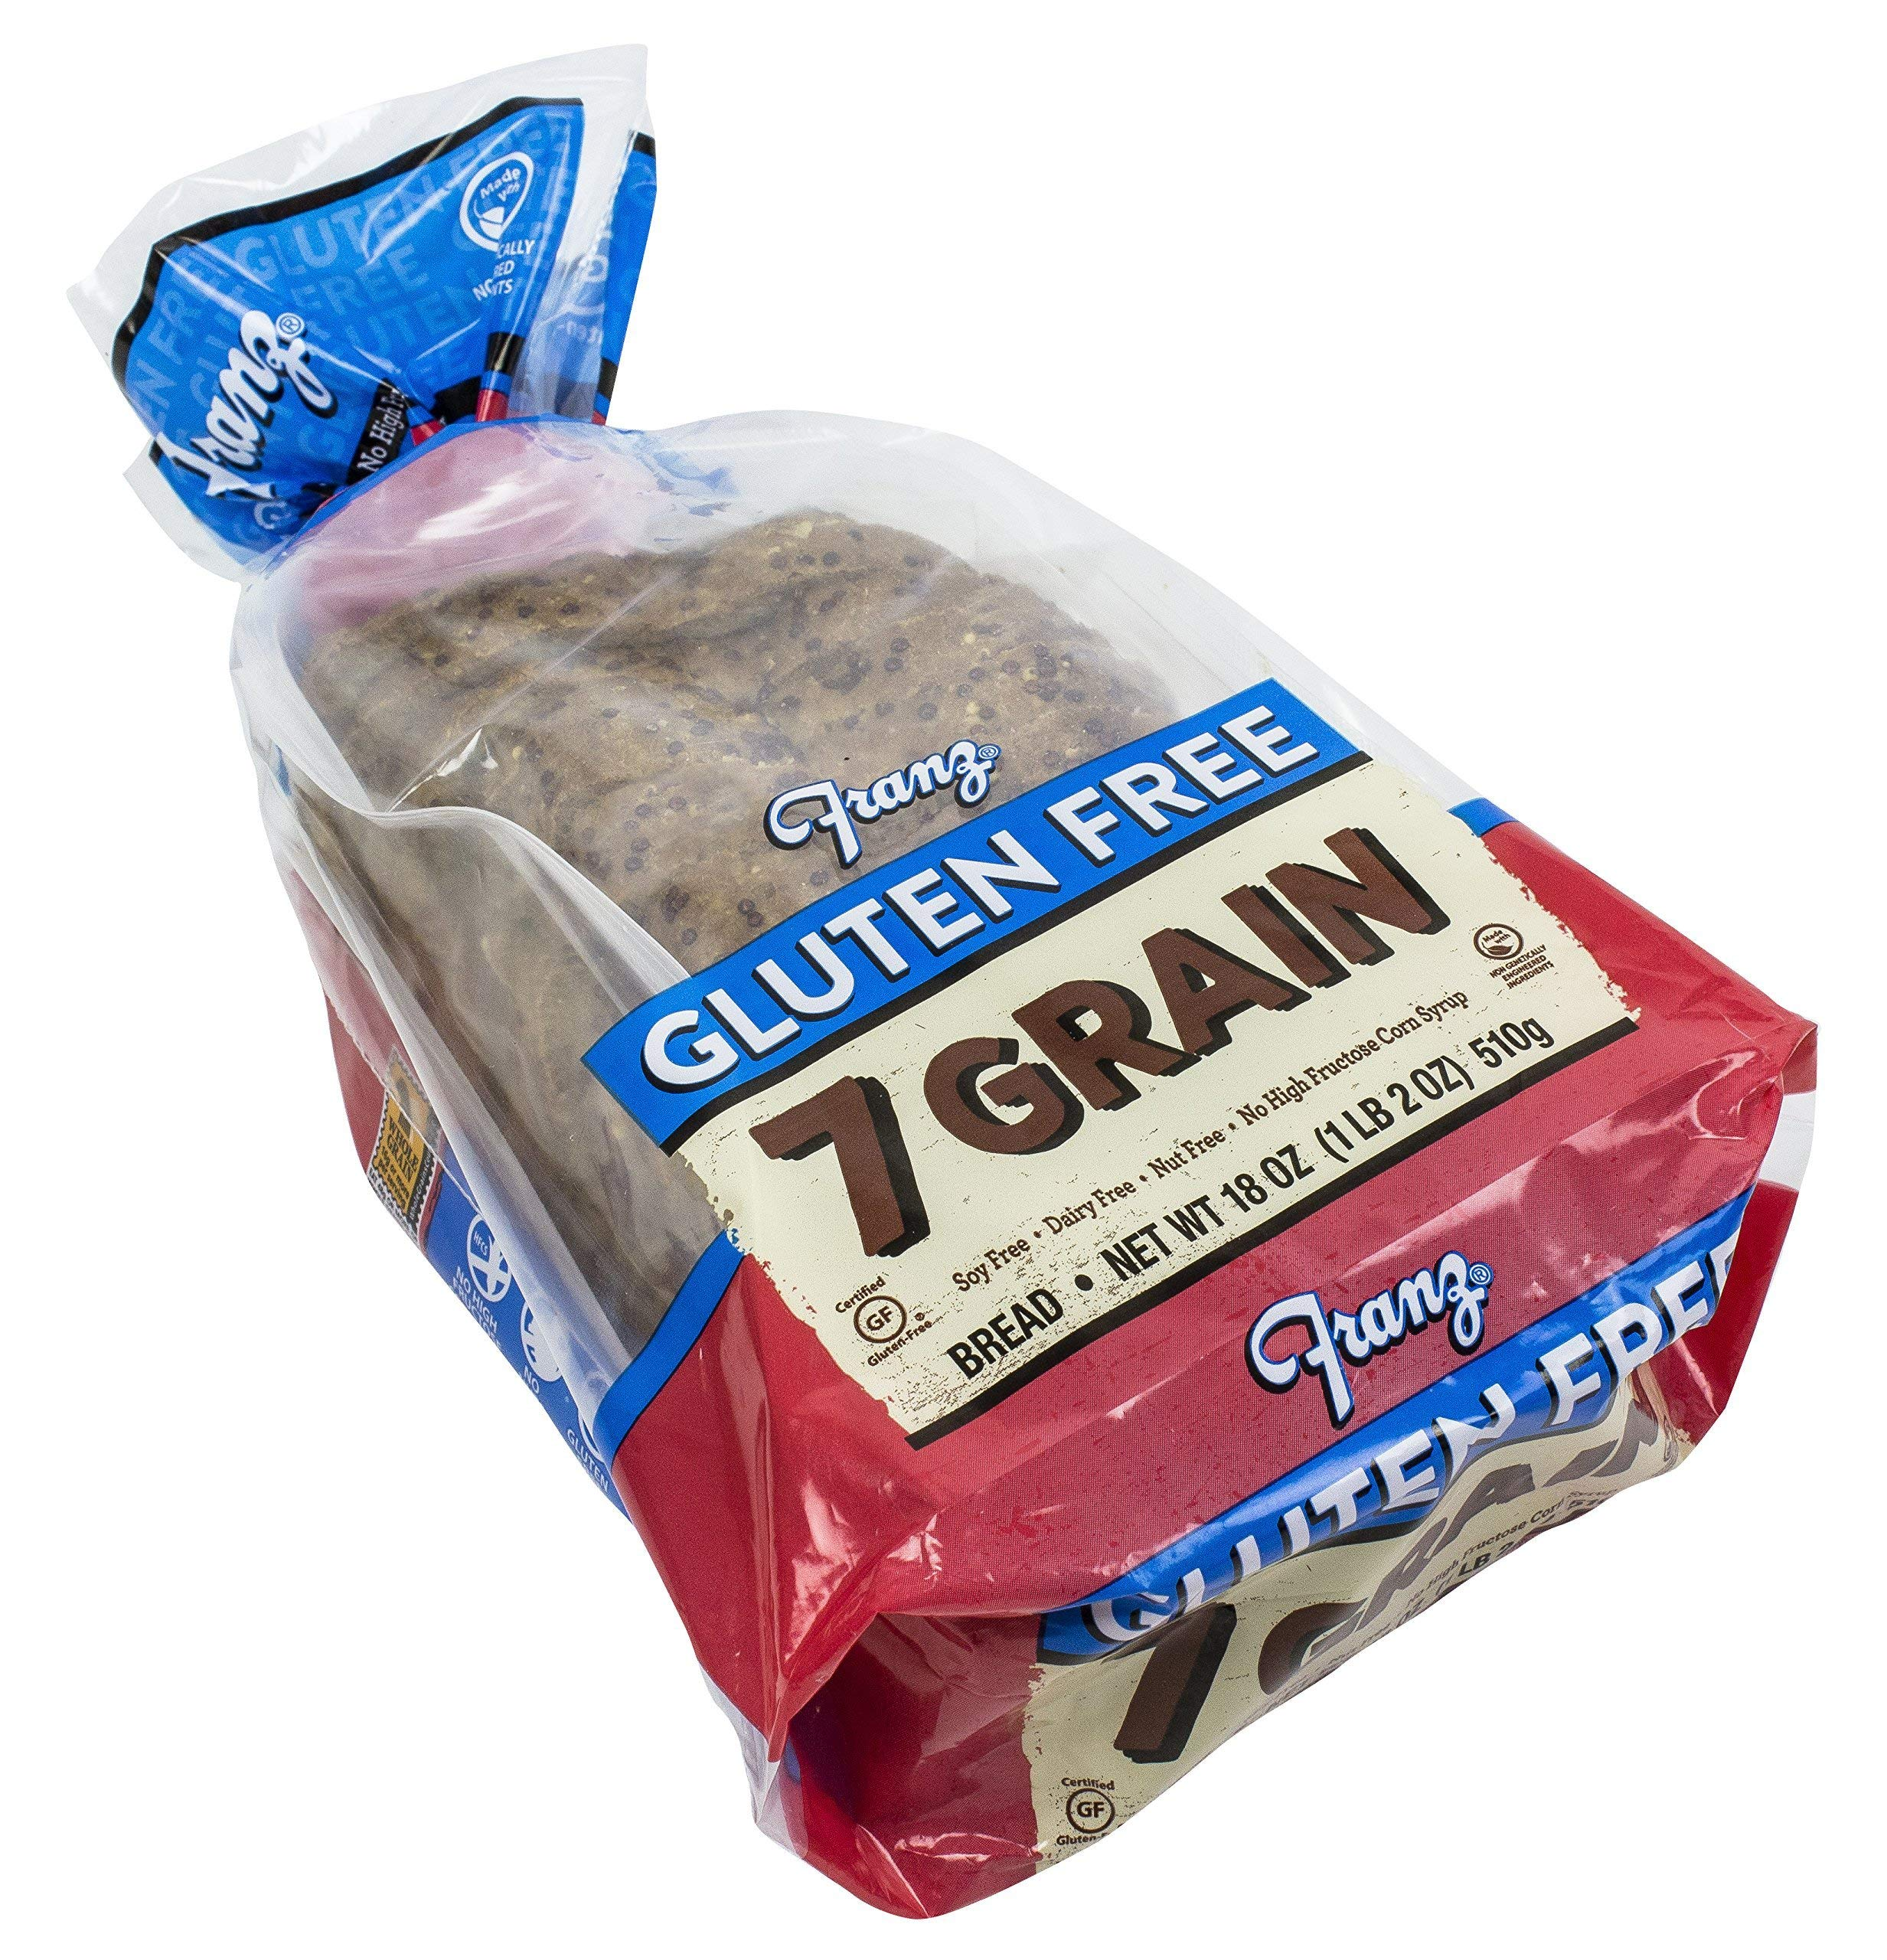 Franz Bakery, Bread 7 Grain Gluten free, 18 Ounce by Franz Bakery